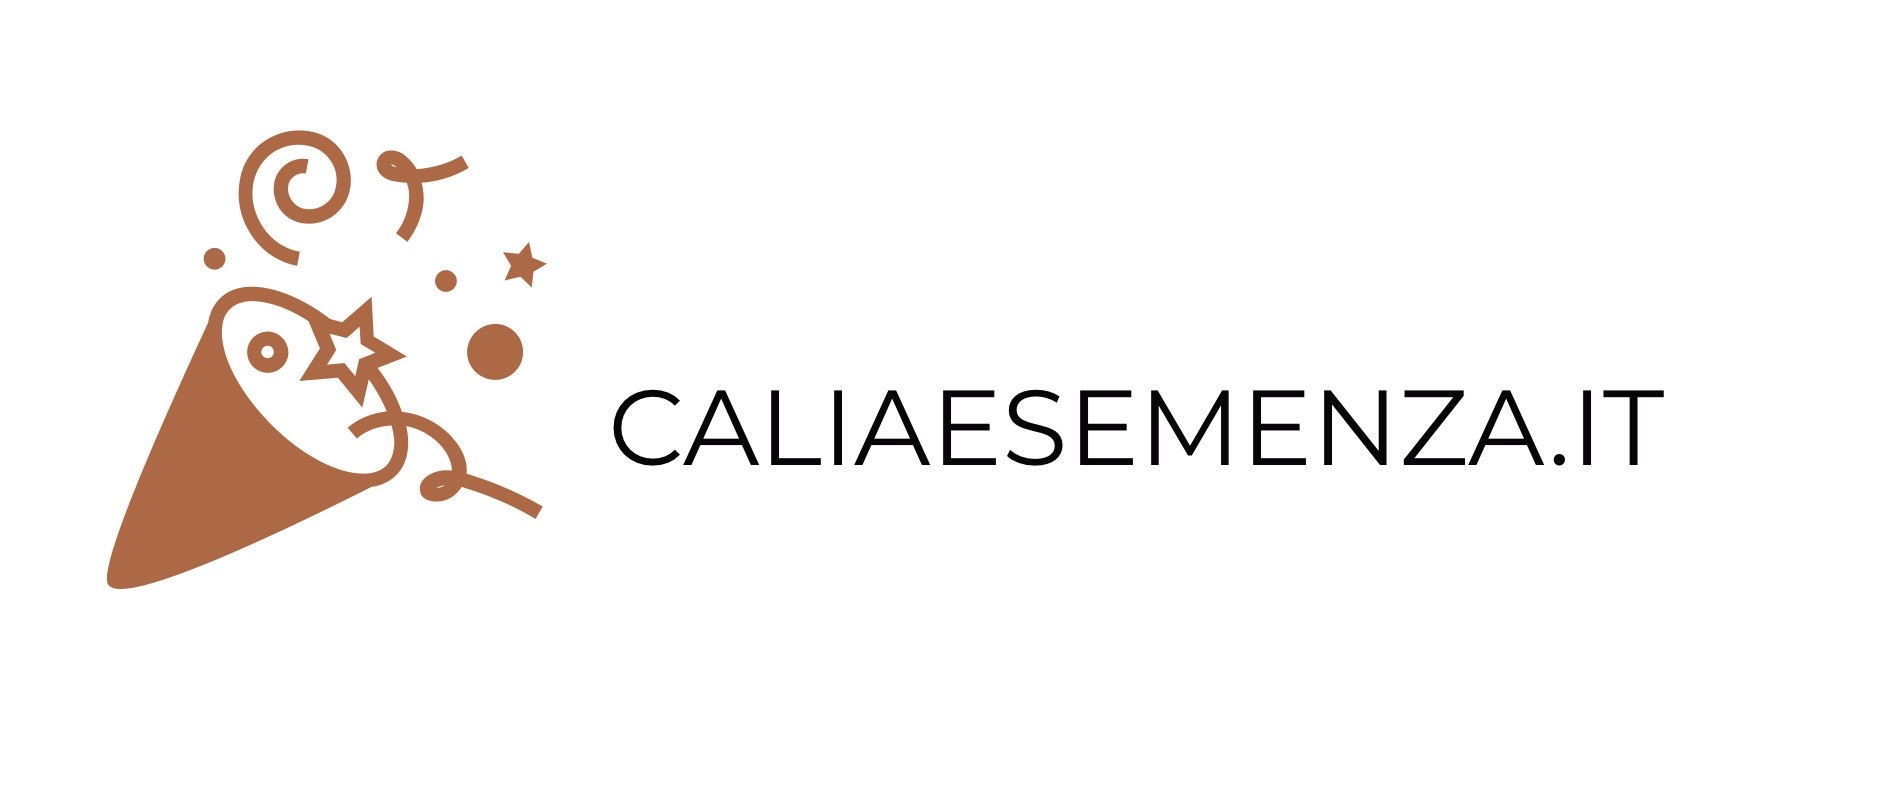 caliaesemenza.it